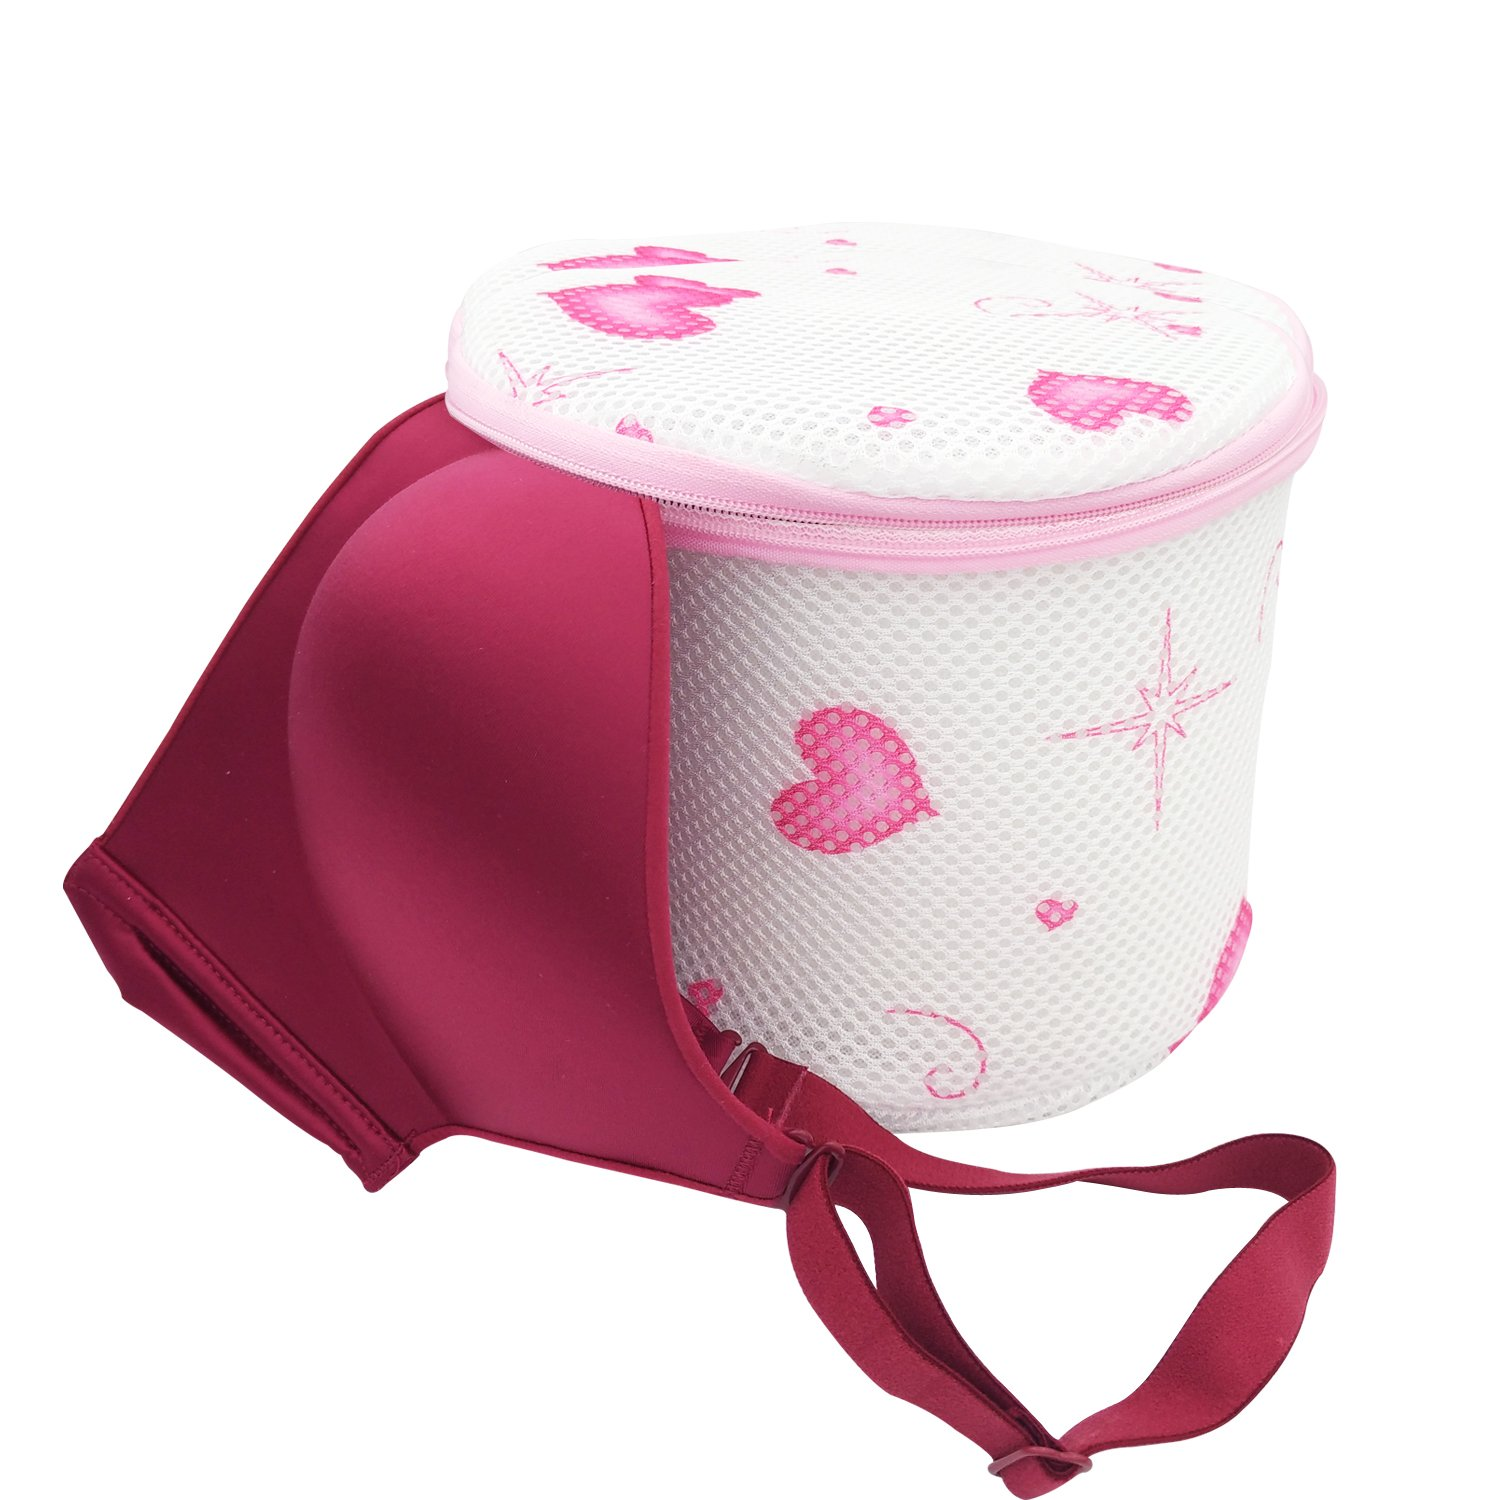 Twins Trade 2 Packs Bra Wash Bags Reusable for Lingerie,Yoga Bra,Hosiery,Stocking,Underwear Laundry Bags with Premium Zipper 2, White